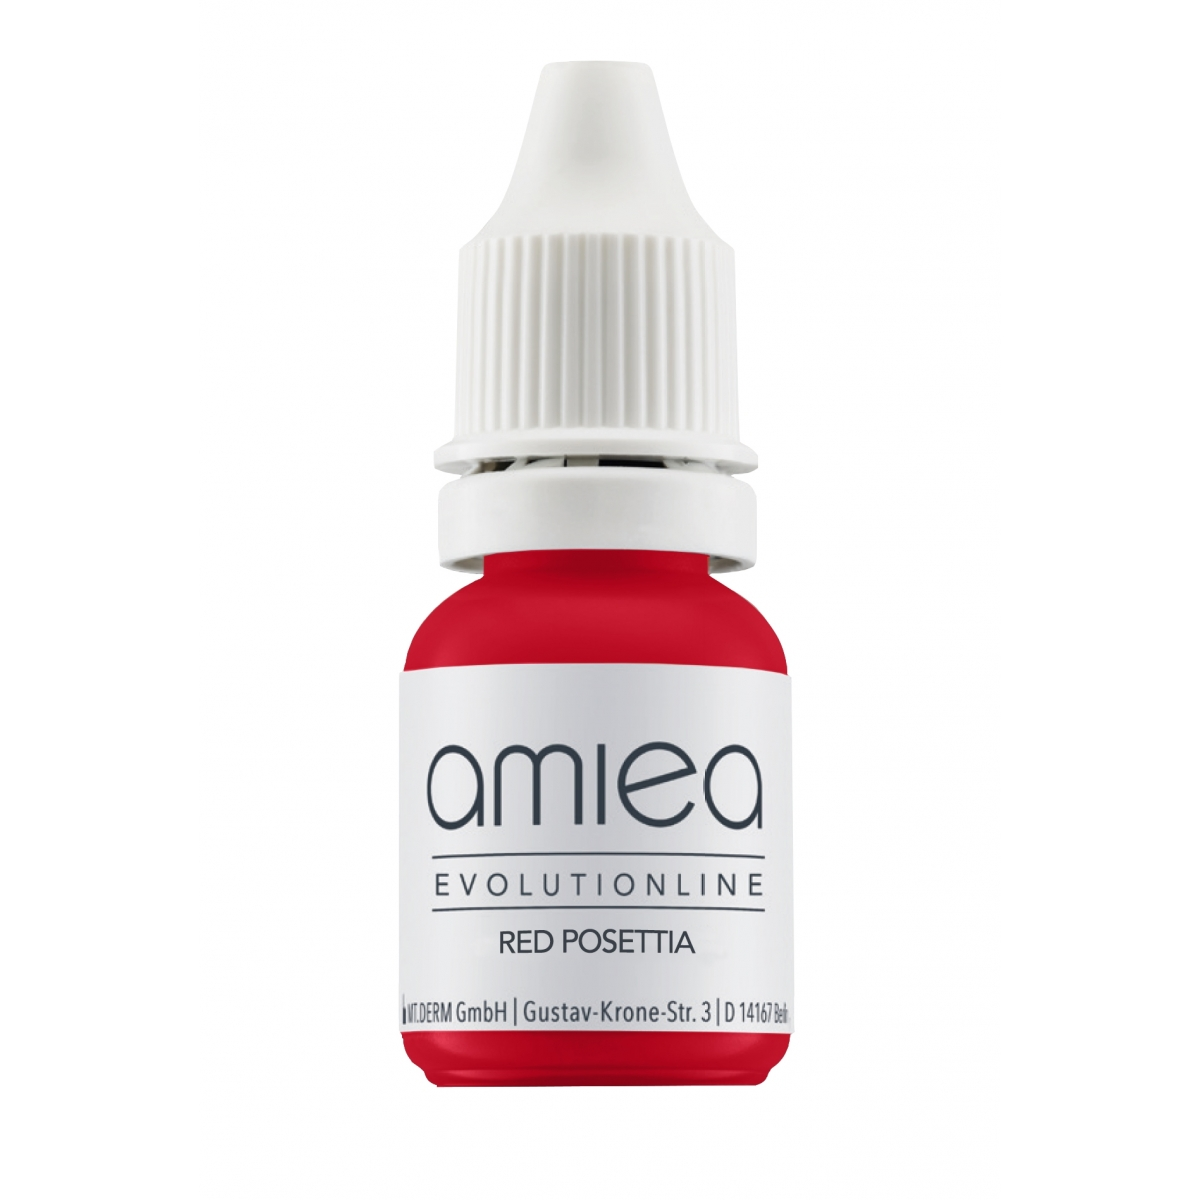 PIGMENTS AMIEA EVOLUTIONLINE RED POSETTIA, 5 ml